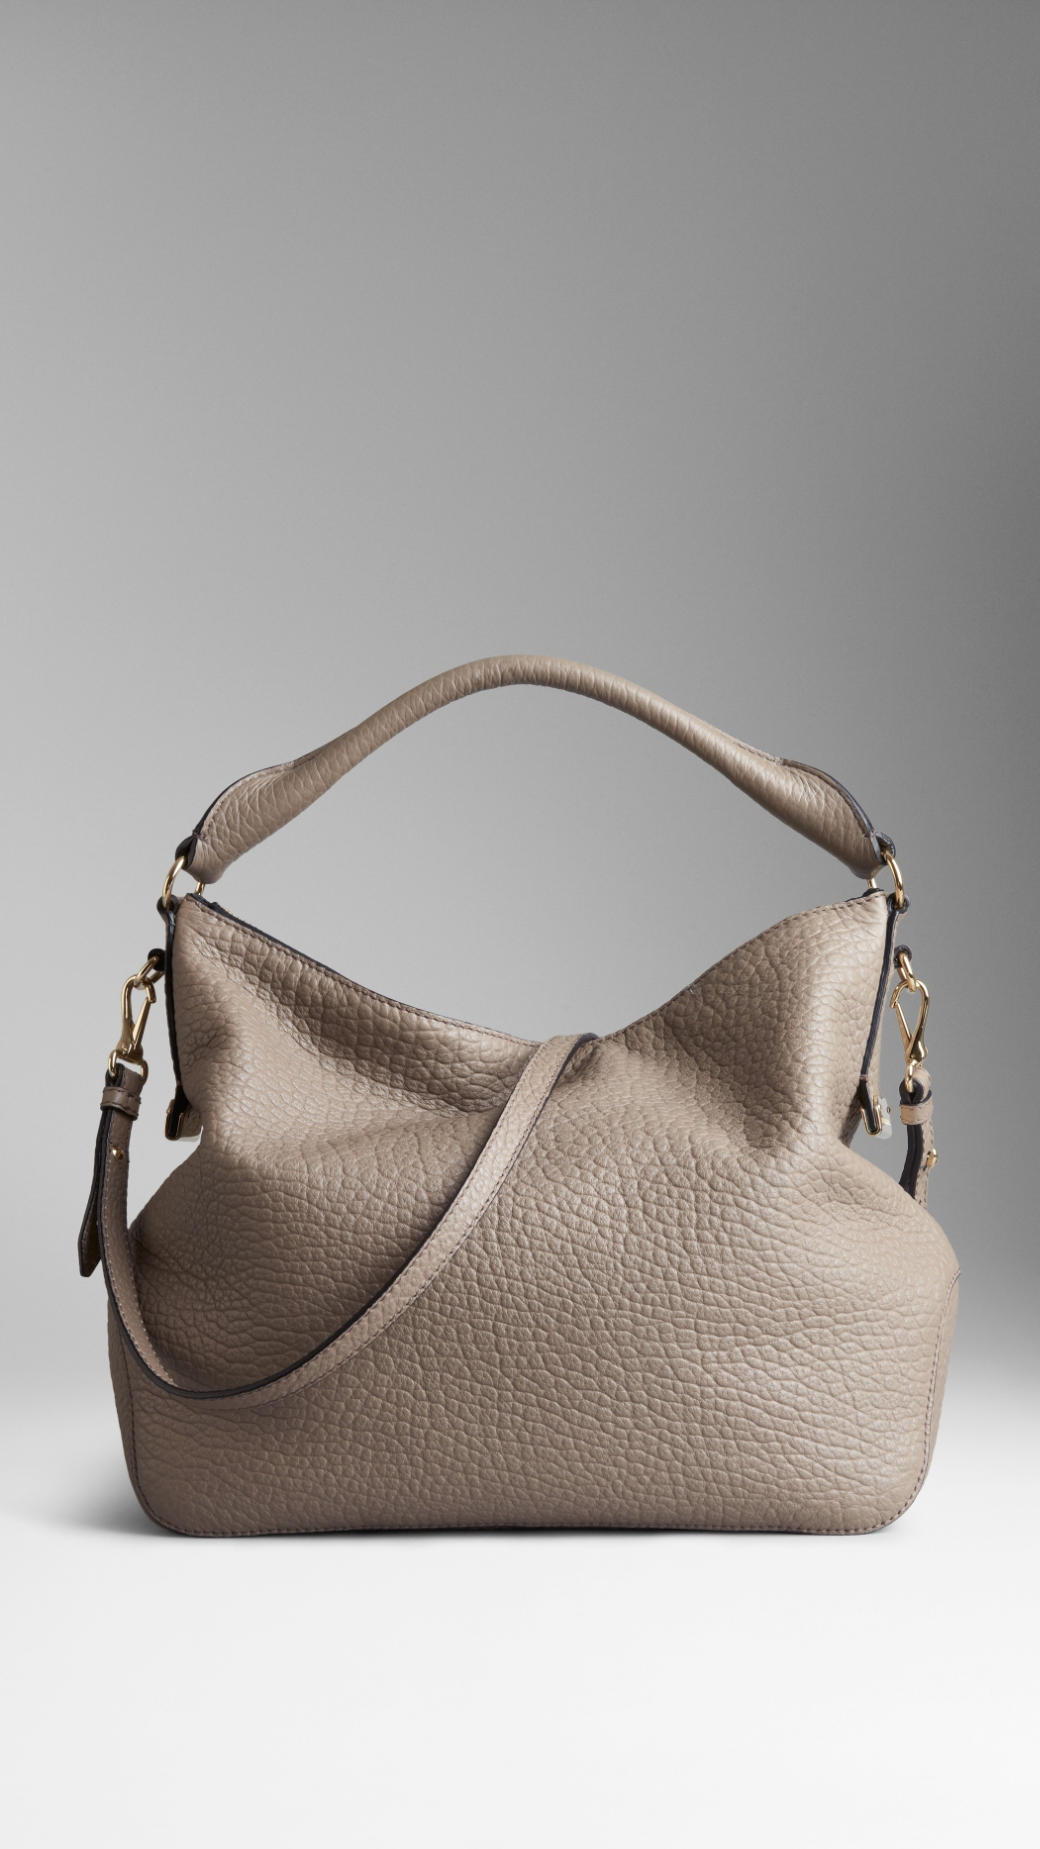 Burberry Small Signature Grain Leather Hobo Bag in Natural | Lyst